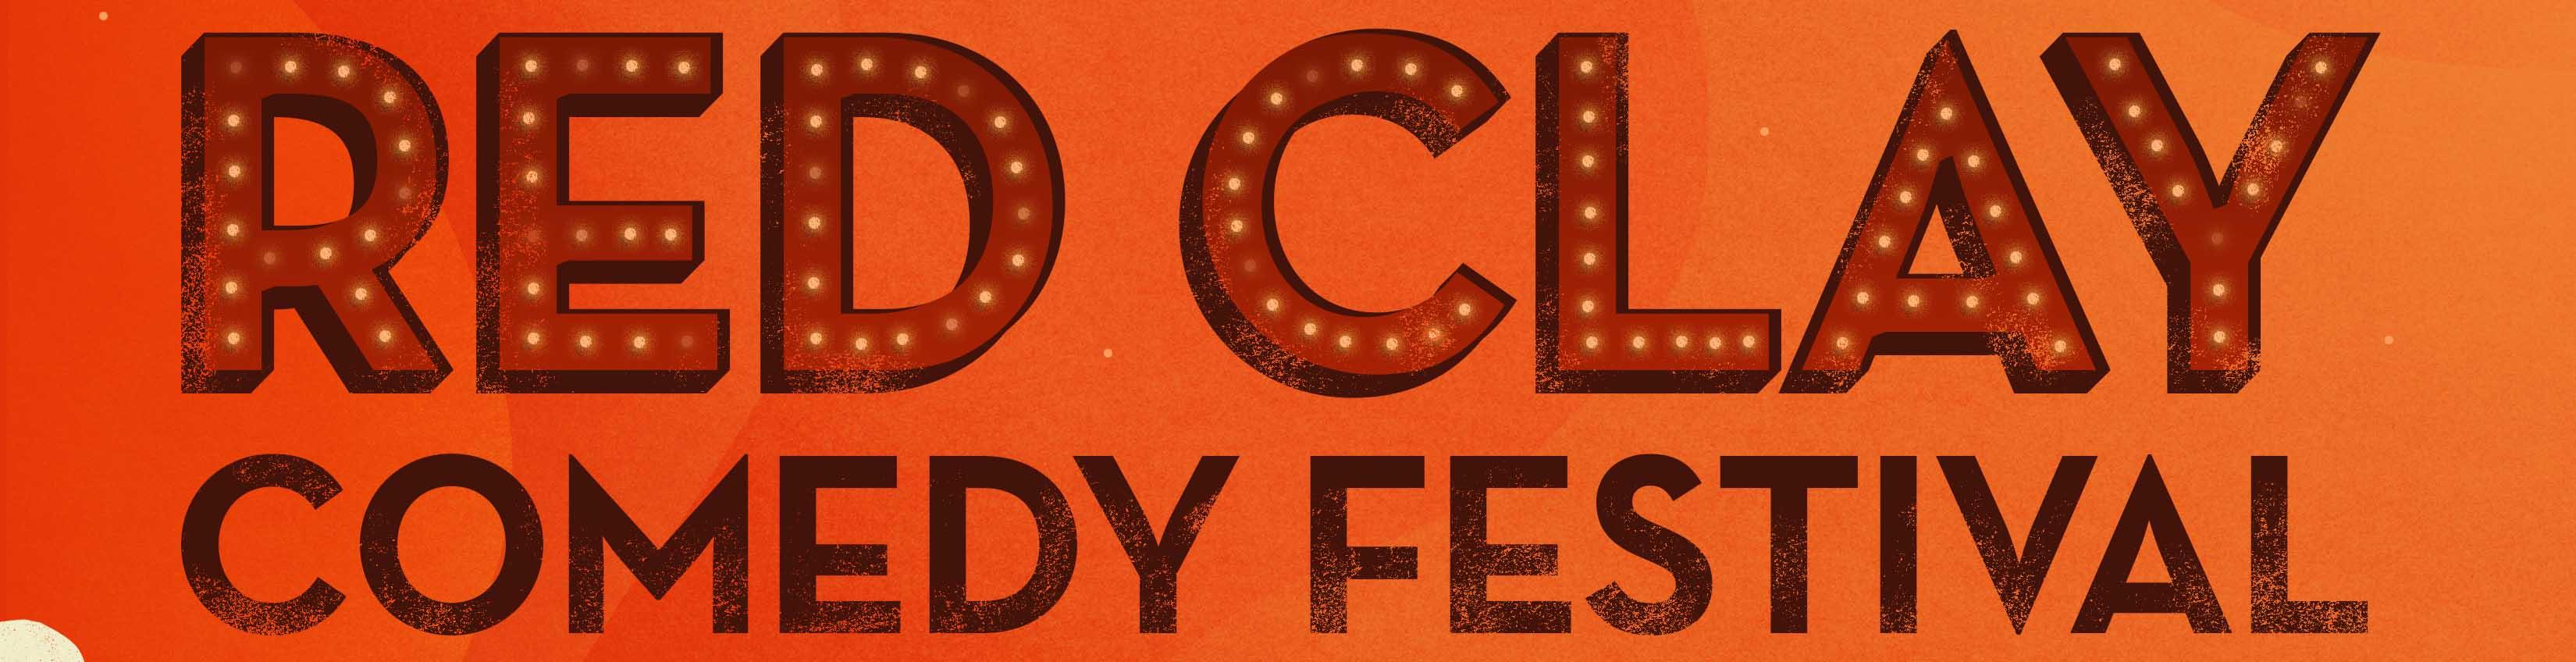 Red Clay Comedy Festival